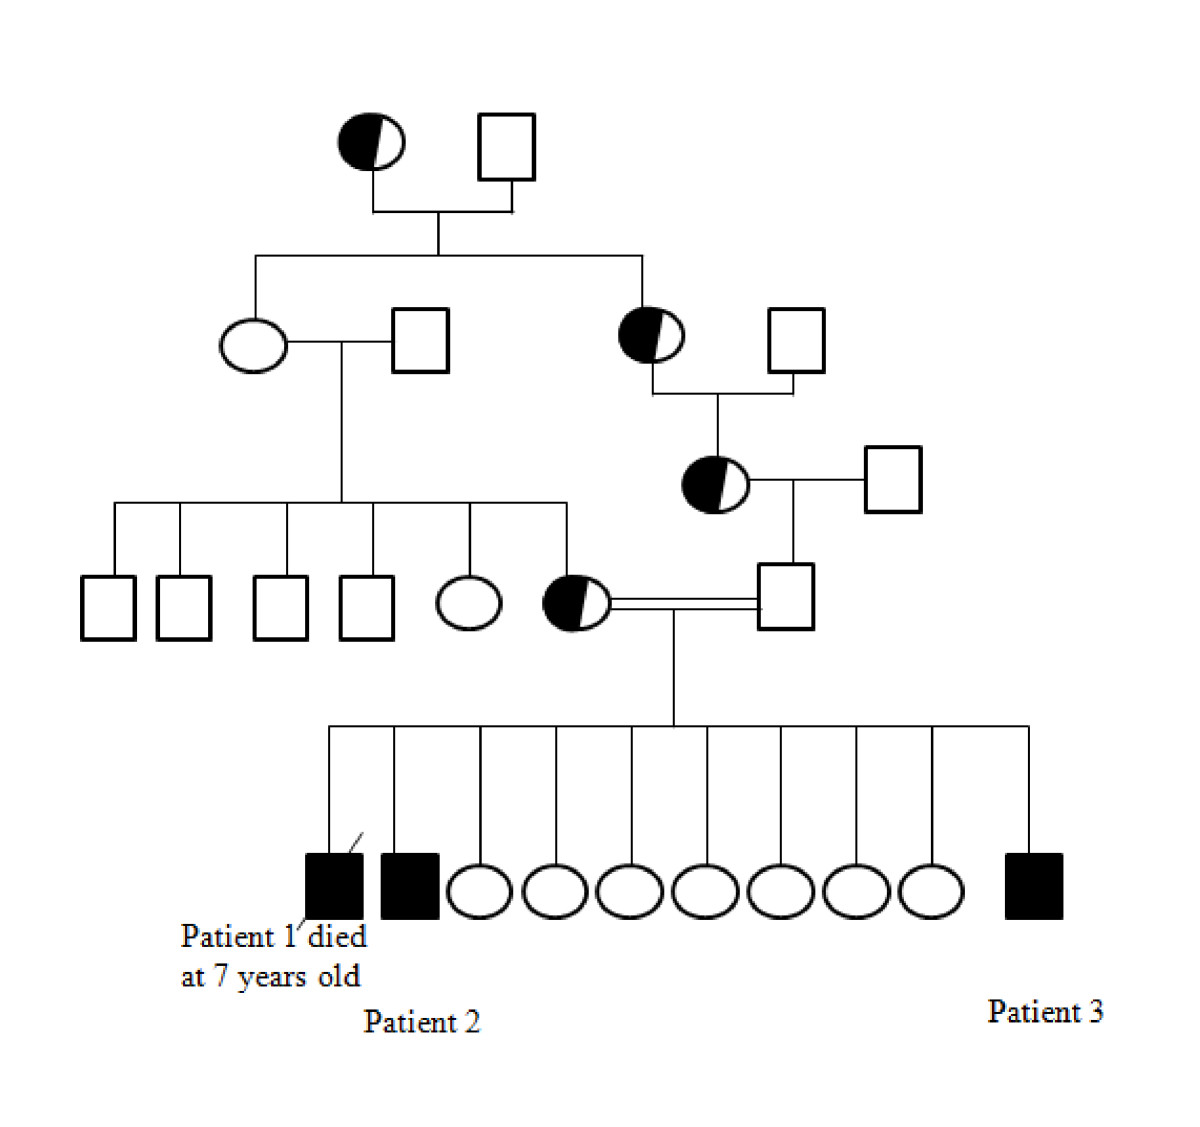 https://static-content.springer.com/image/art%3A10.1186%2F1746-1596-6-42/MediaObjects/13000_2011_Article_416_Fig1_HTML.jpg